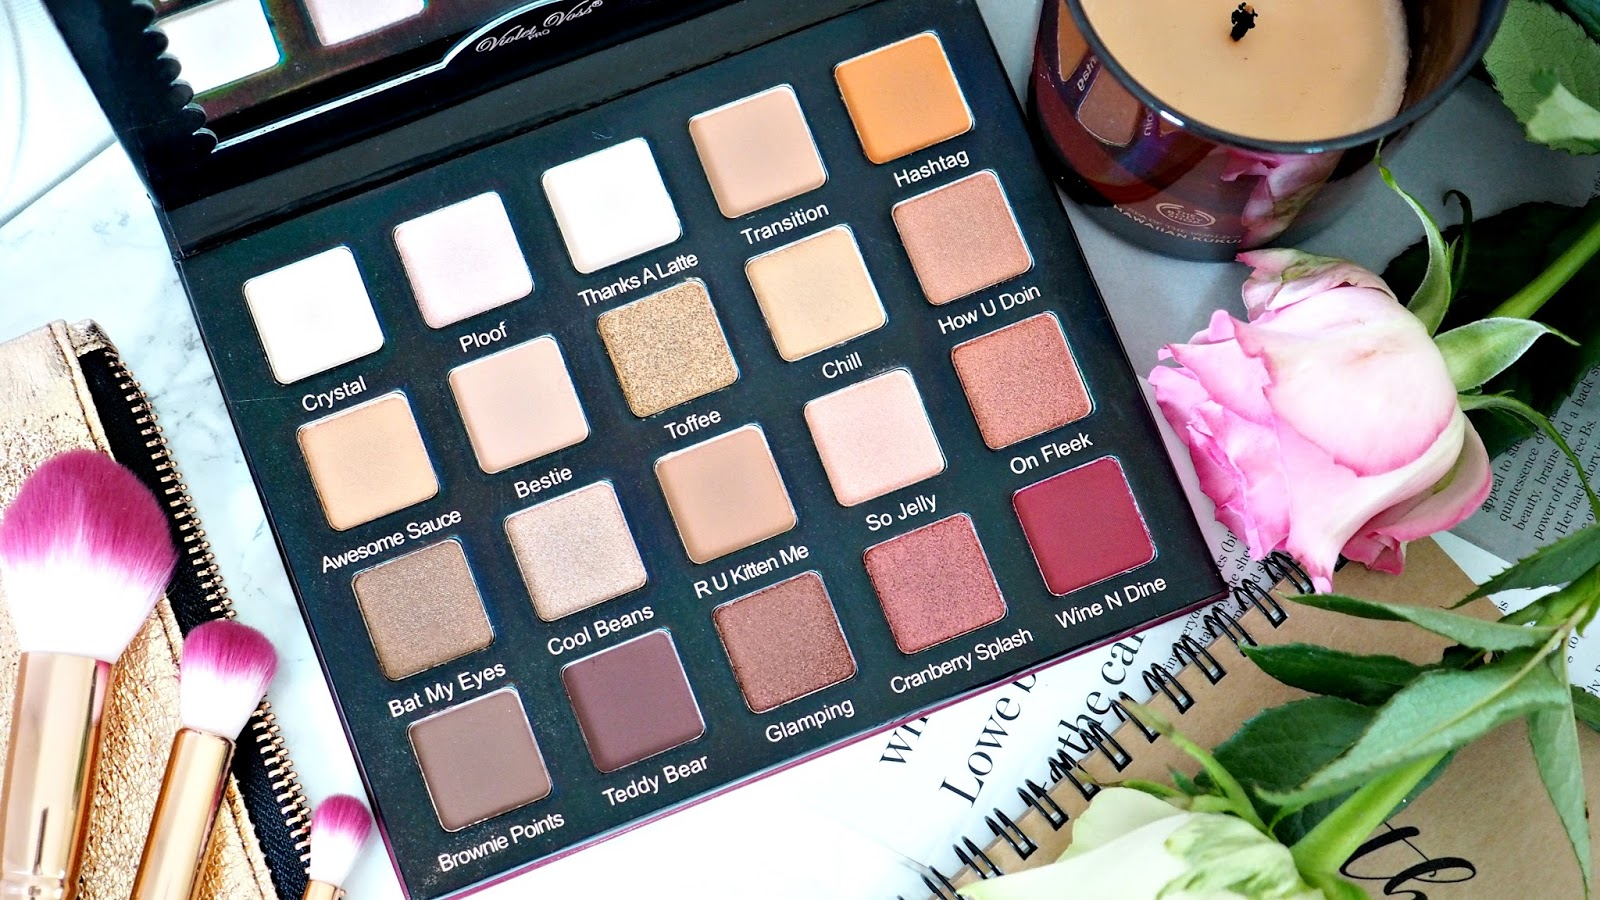 Violet Voss Holy Grail palette Review and Swatches